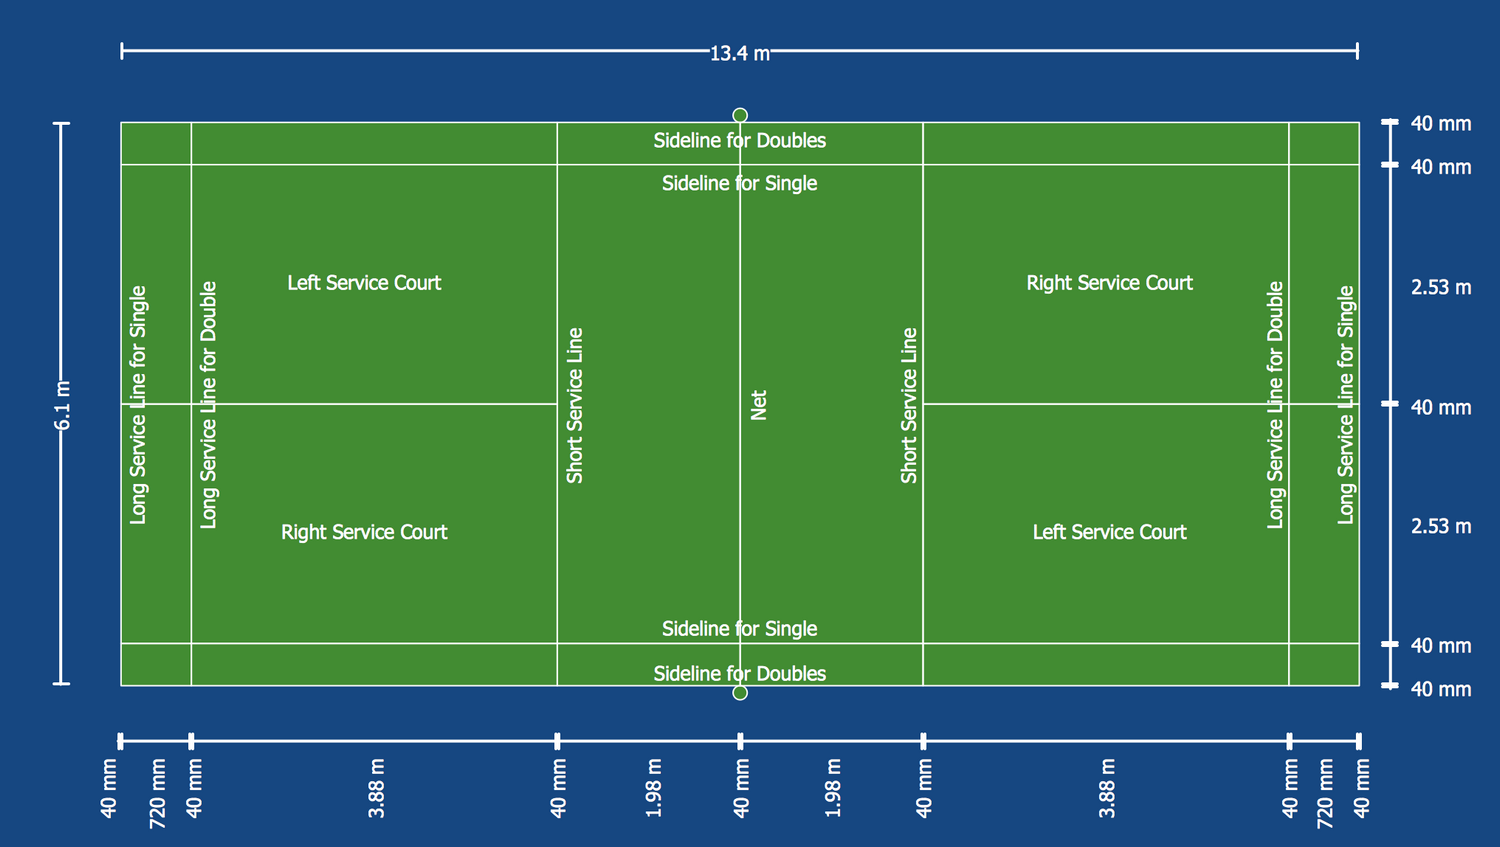 Badminton court layout